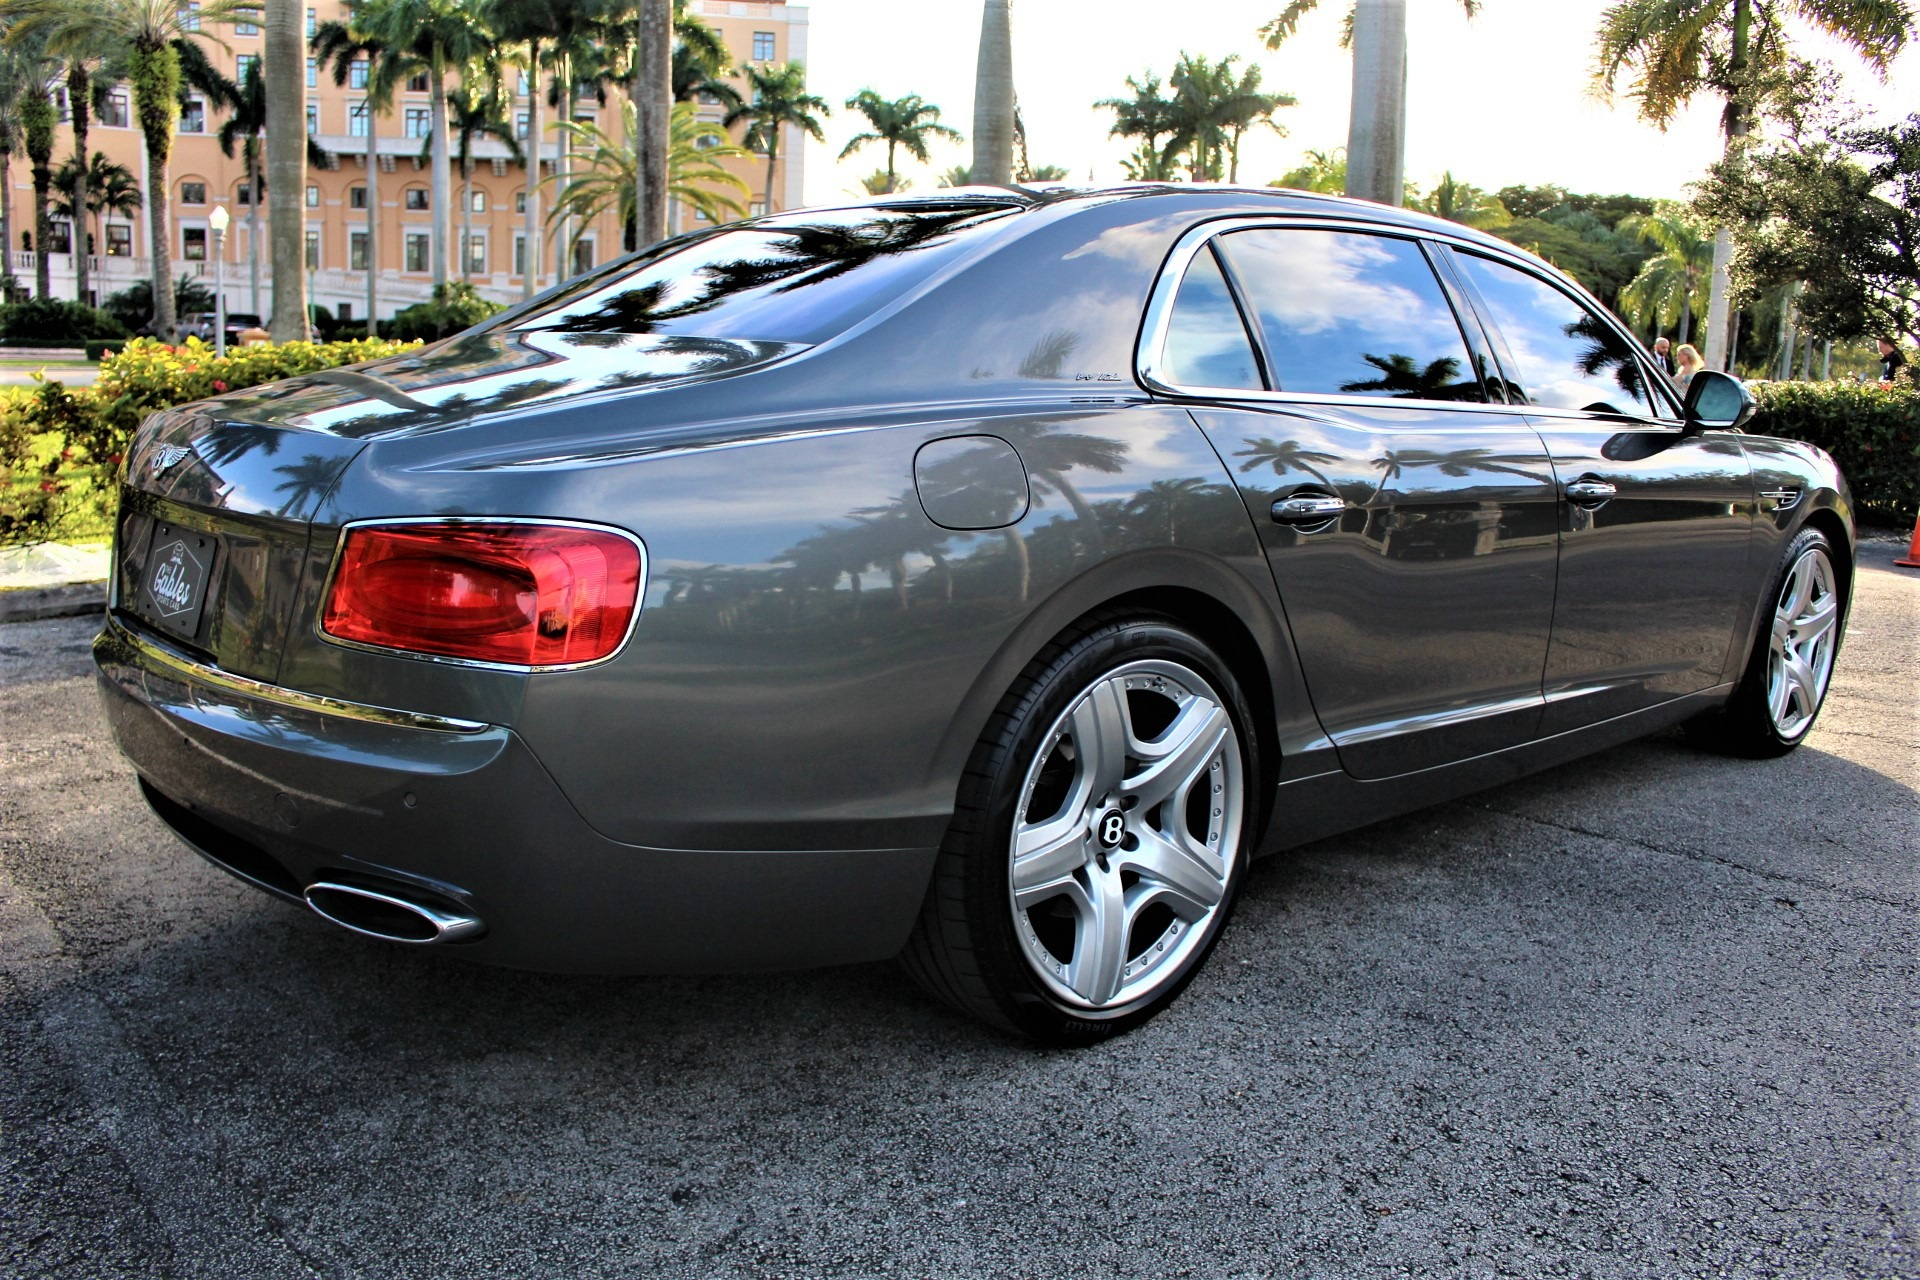 Used 2014 Bentley Flying Spur for sale Sold at The Gables Sports Cars in Miami FL 33146 2